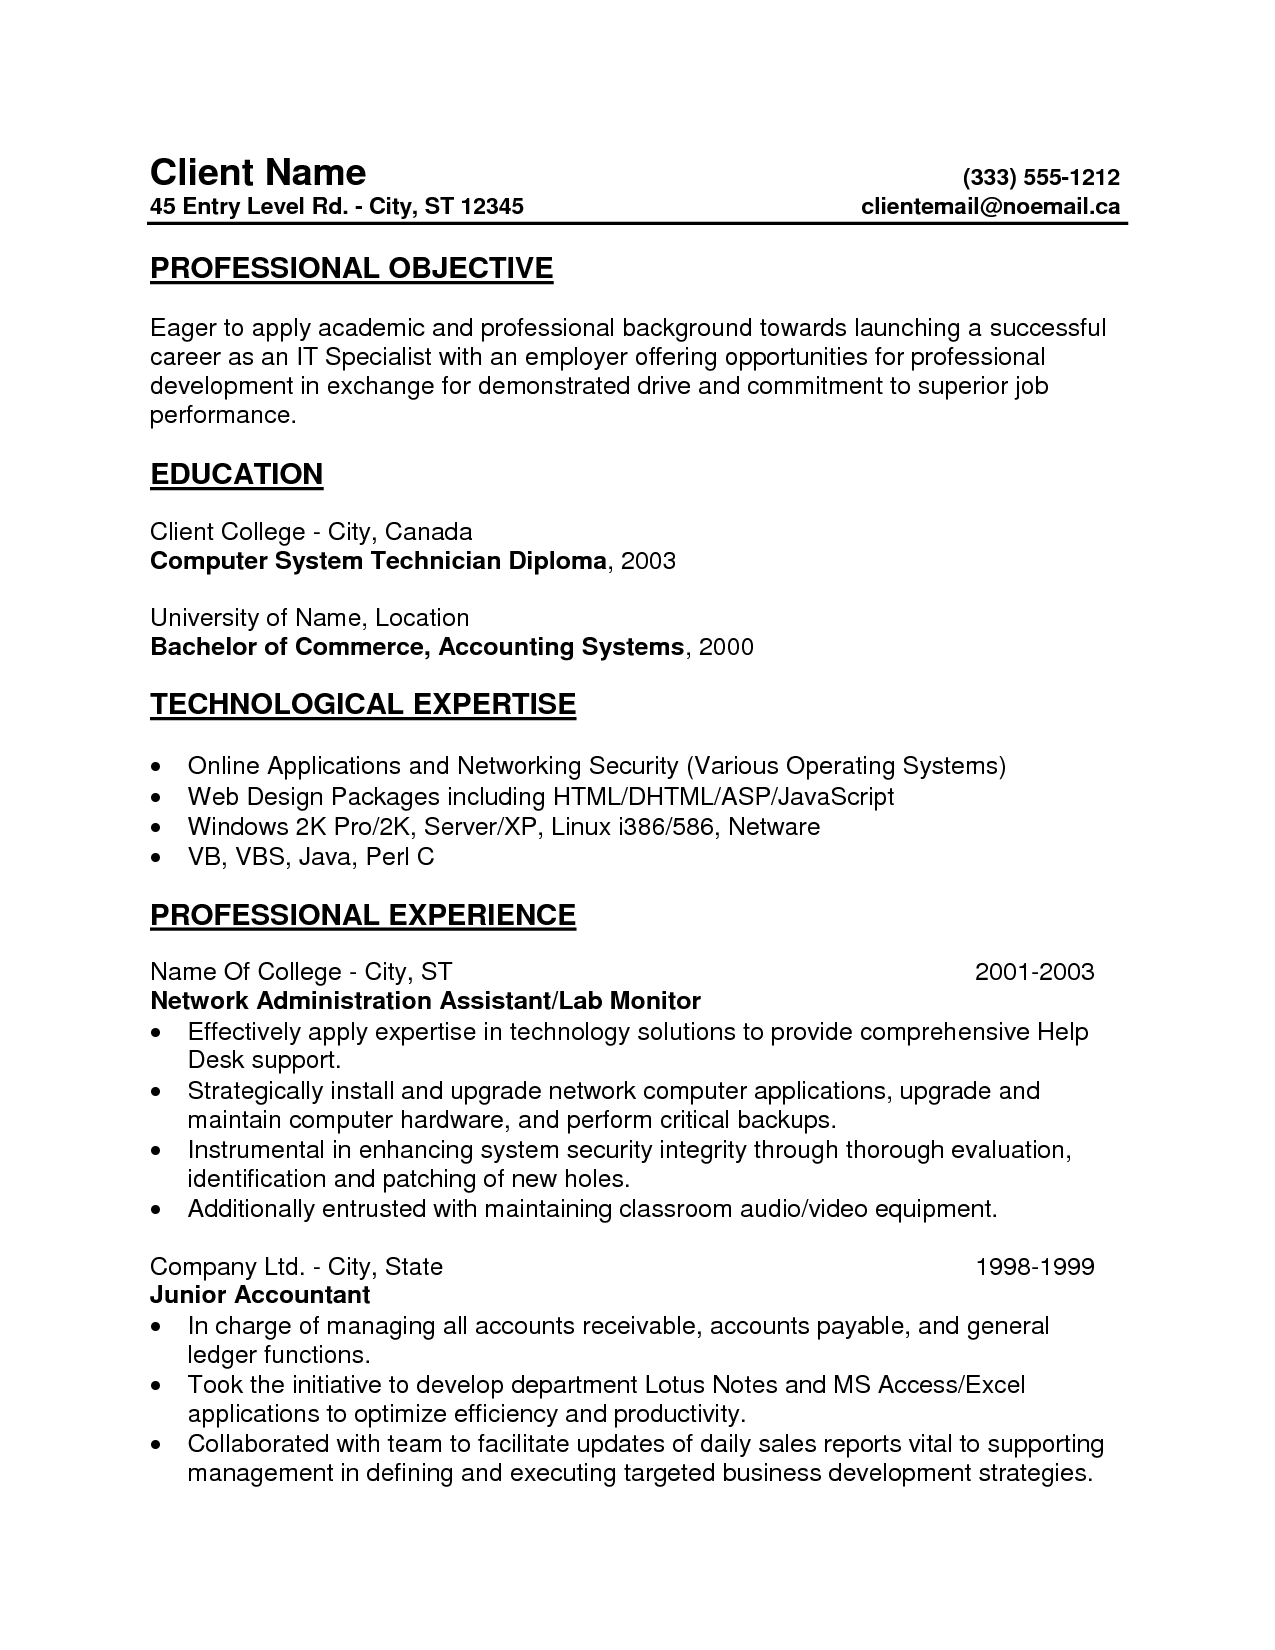 entry level resume profile examples - Juve.cenitdelacabrera.co